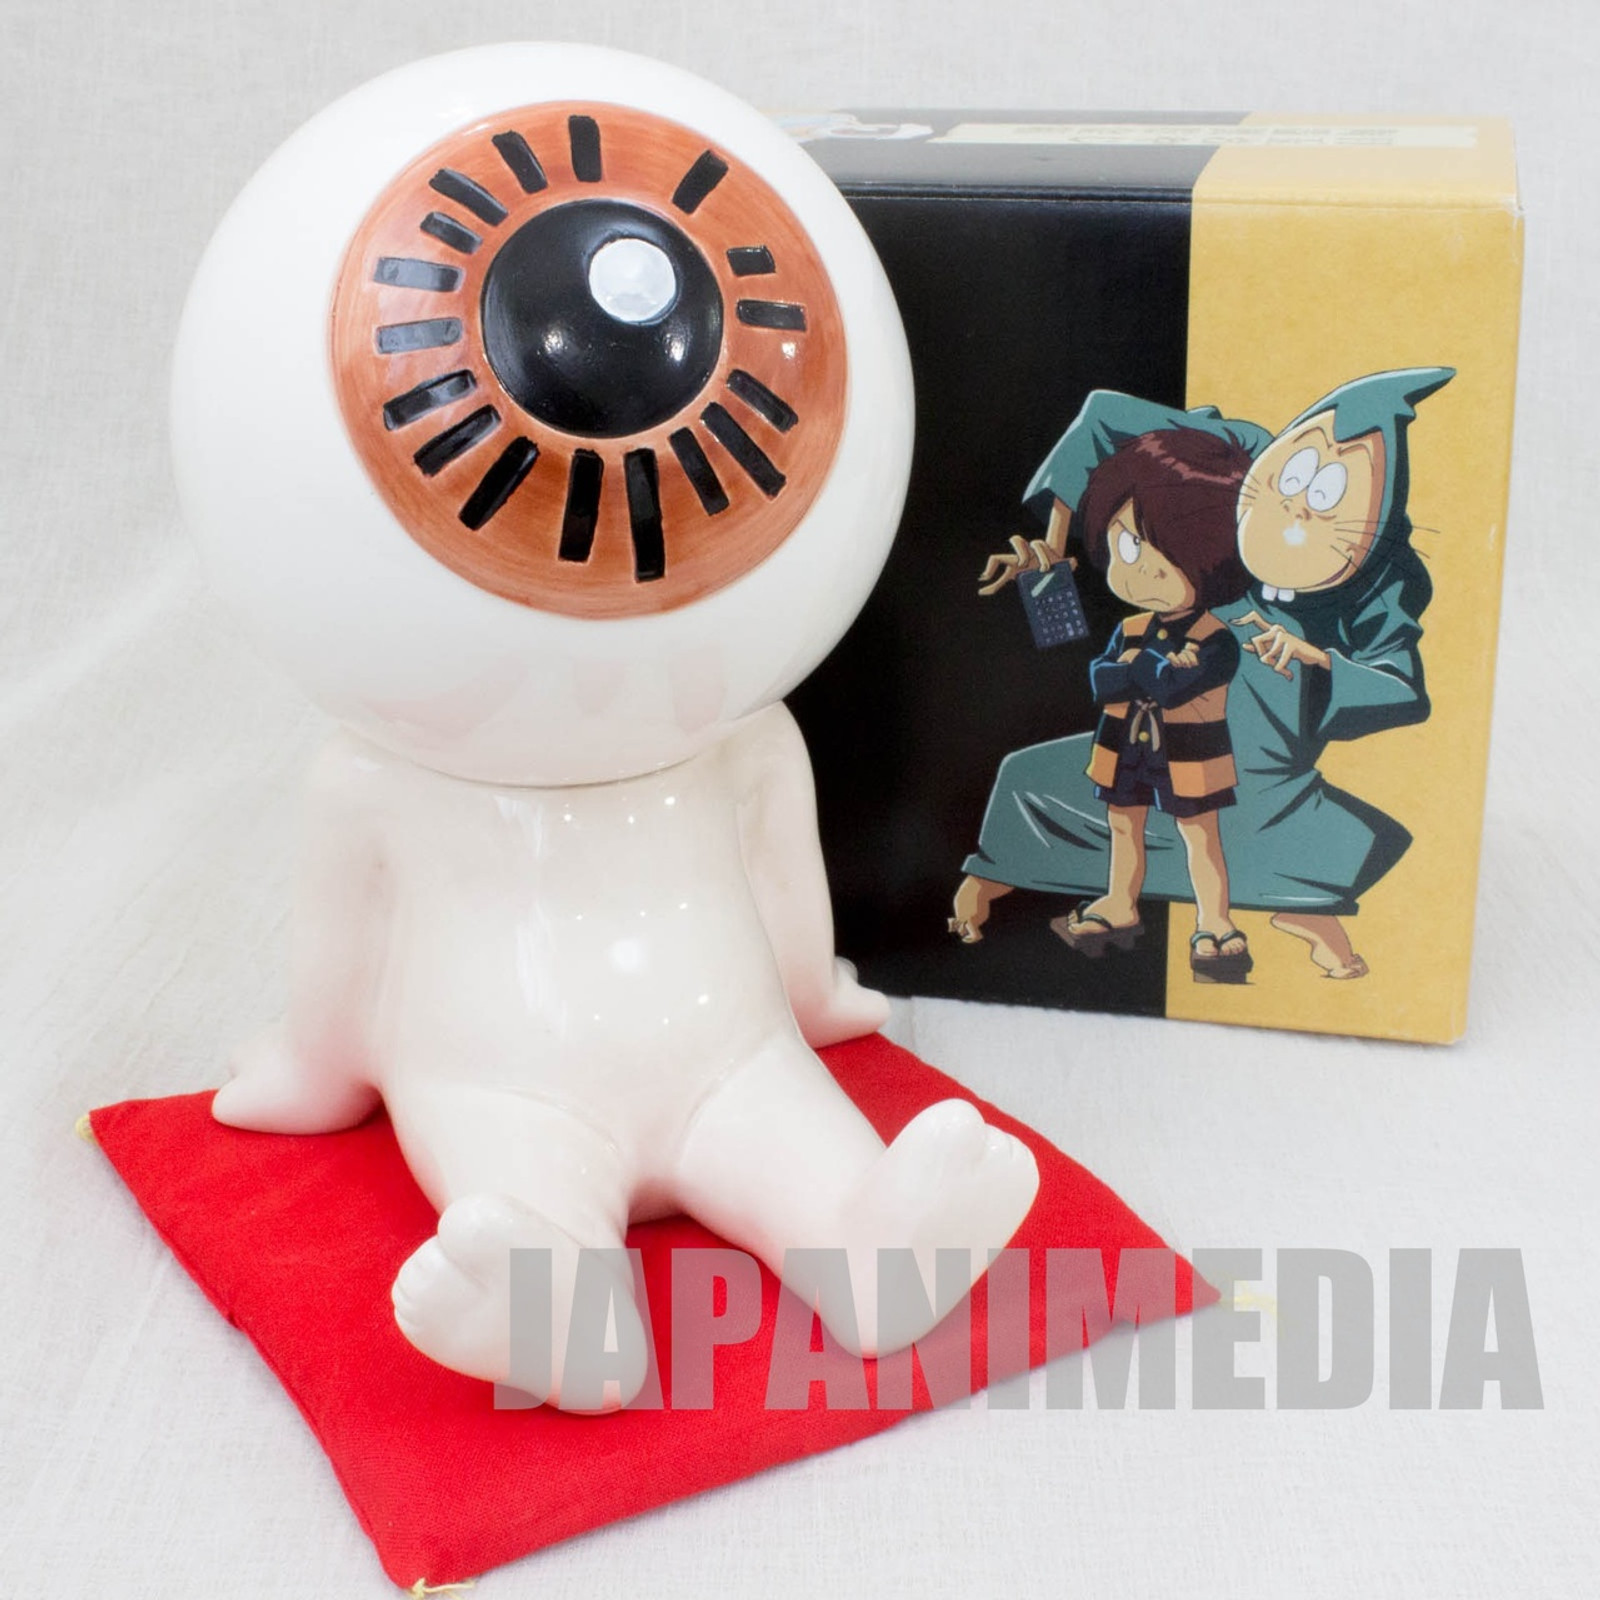 GeGeGe no Kitaro Medama Oyaji Pottery Figure Coin Bank JAPAN